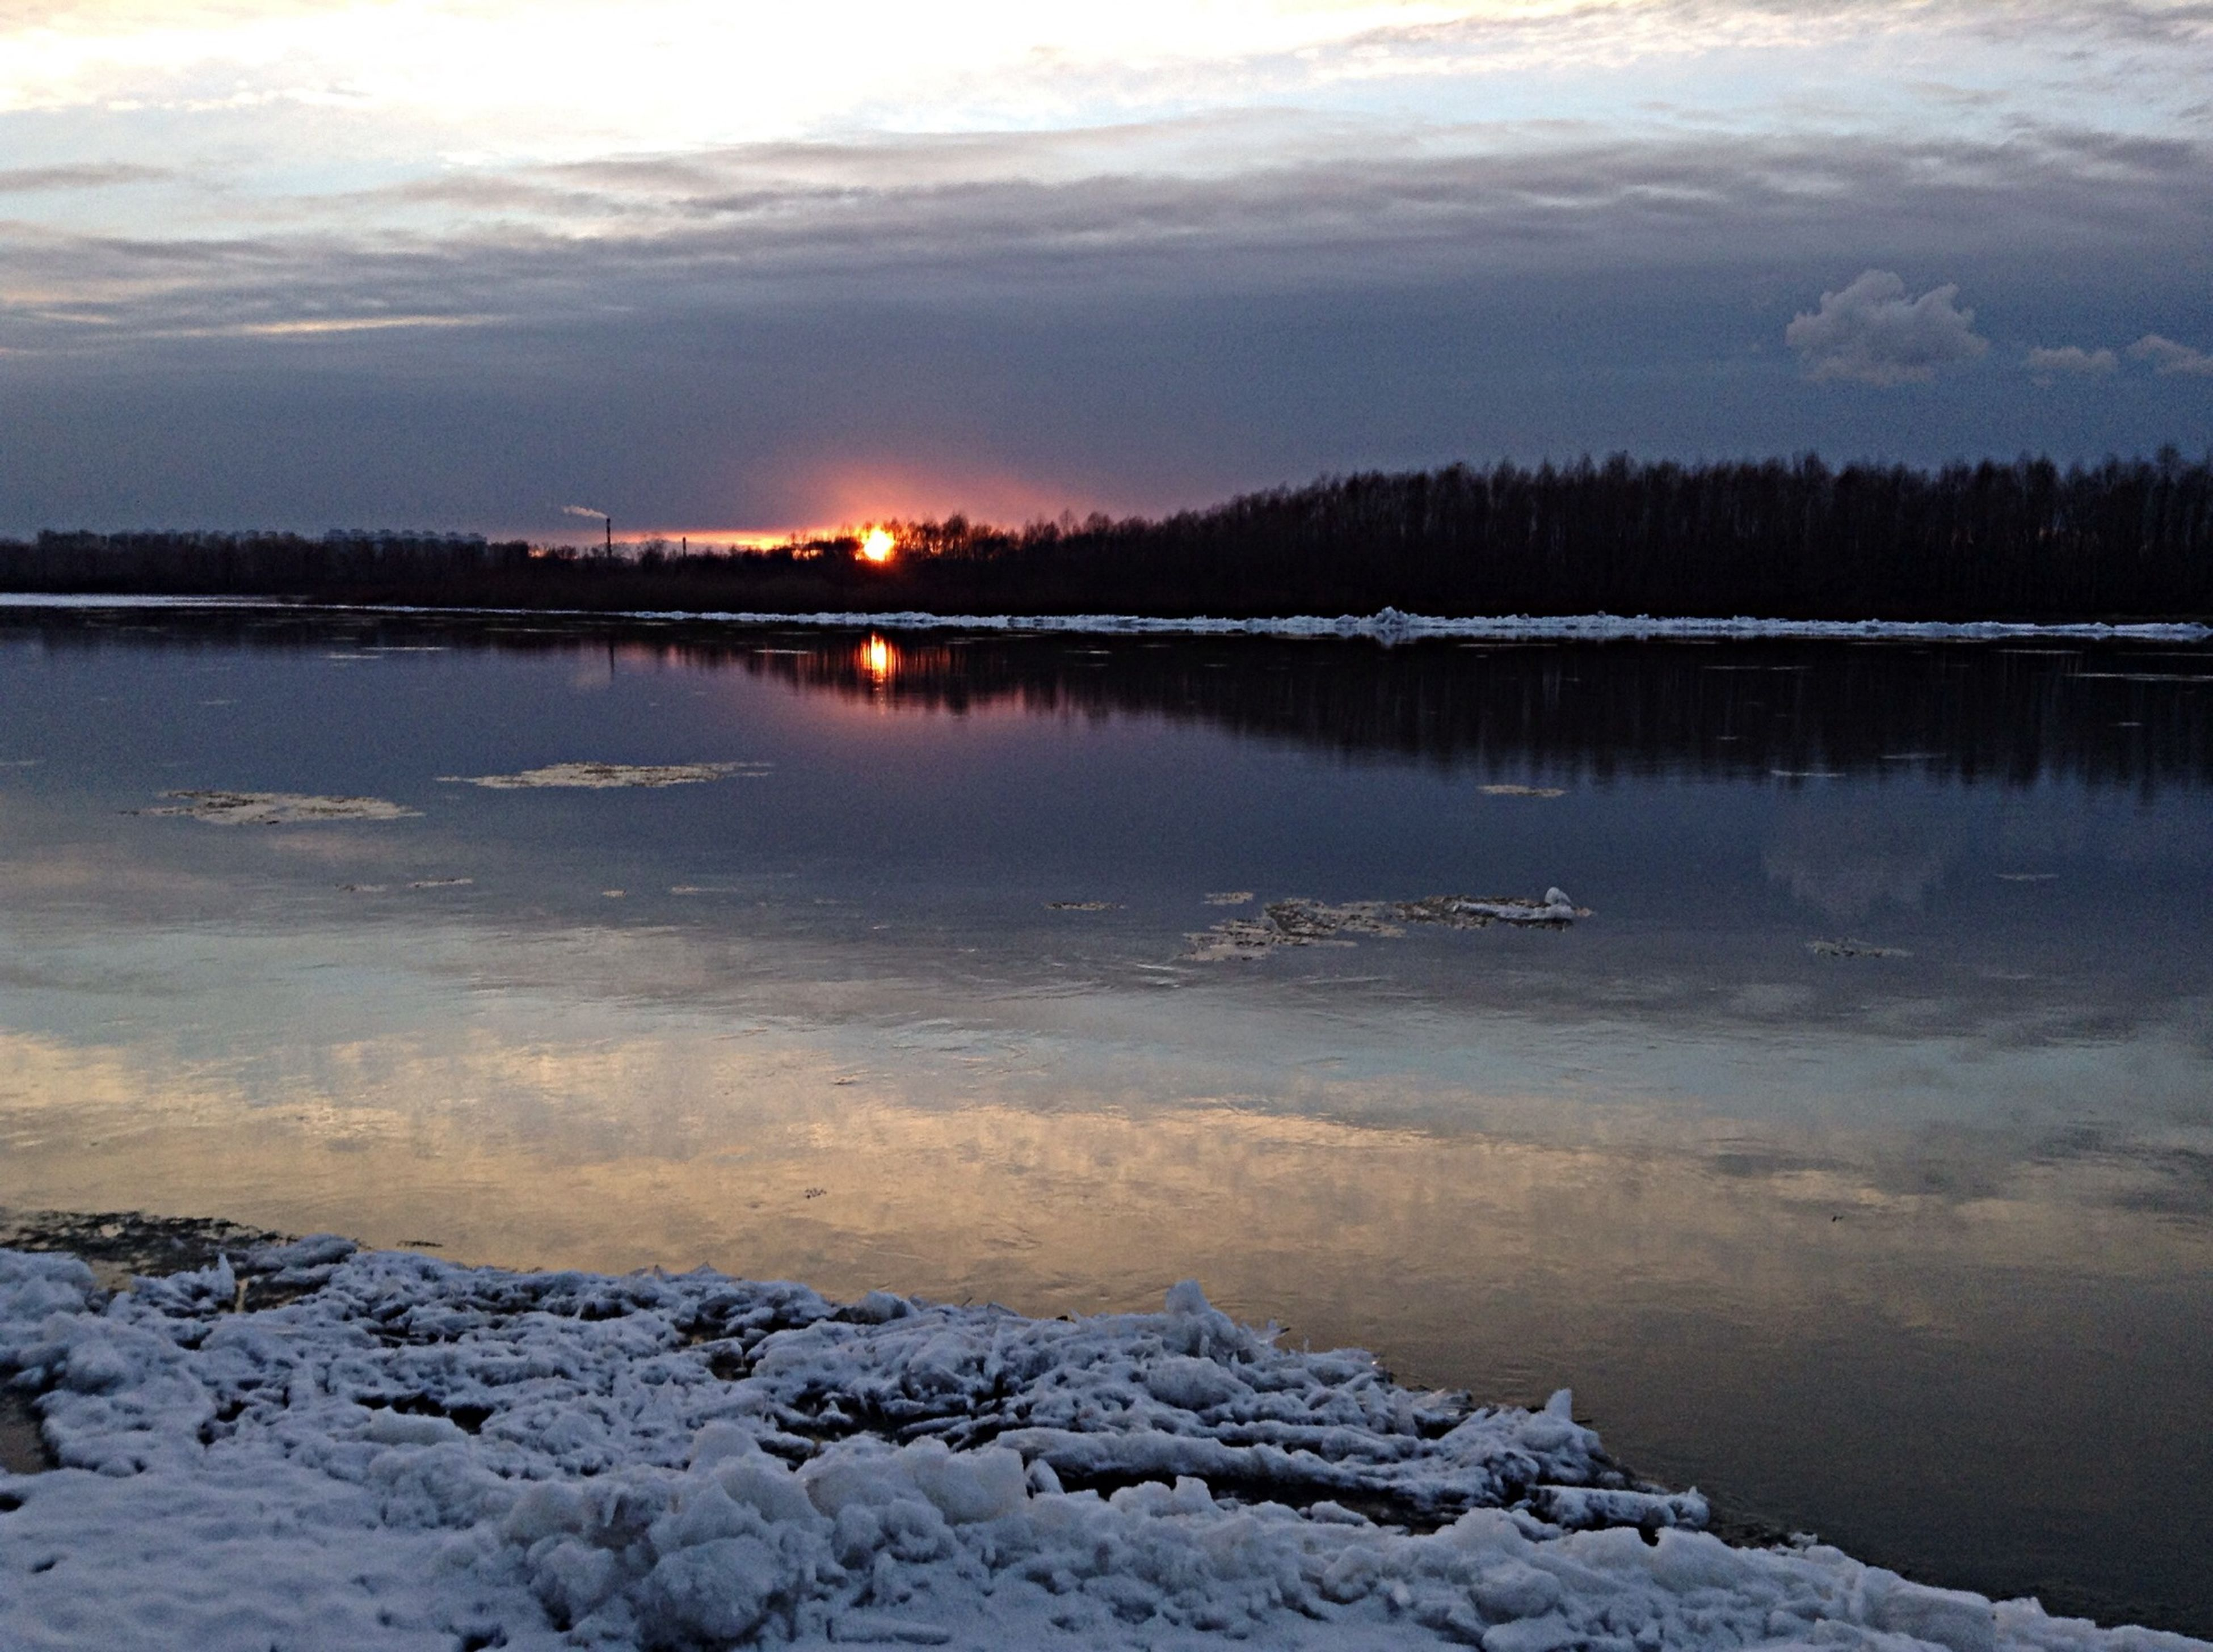 water, snow, cold temperature, winter, tranquil scene, bird, scenics, sunset, tranquility, beauty in nature, lake, animal themes, sky, nature, reflection, wildlife, animals in the wild, weather, silhouette, cloud - sky